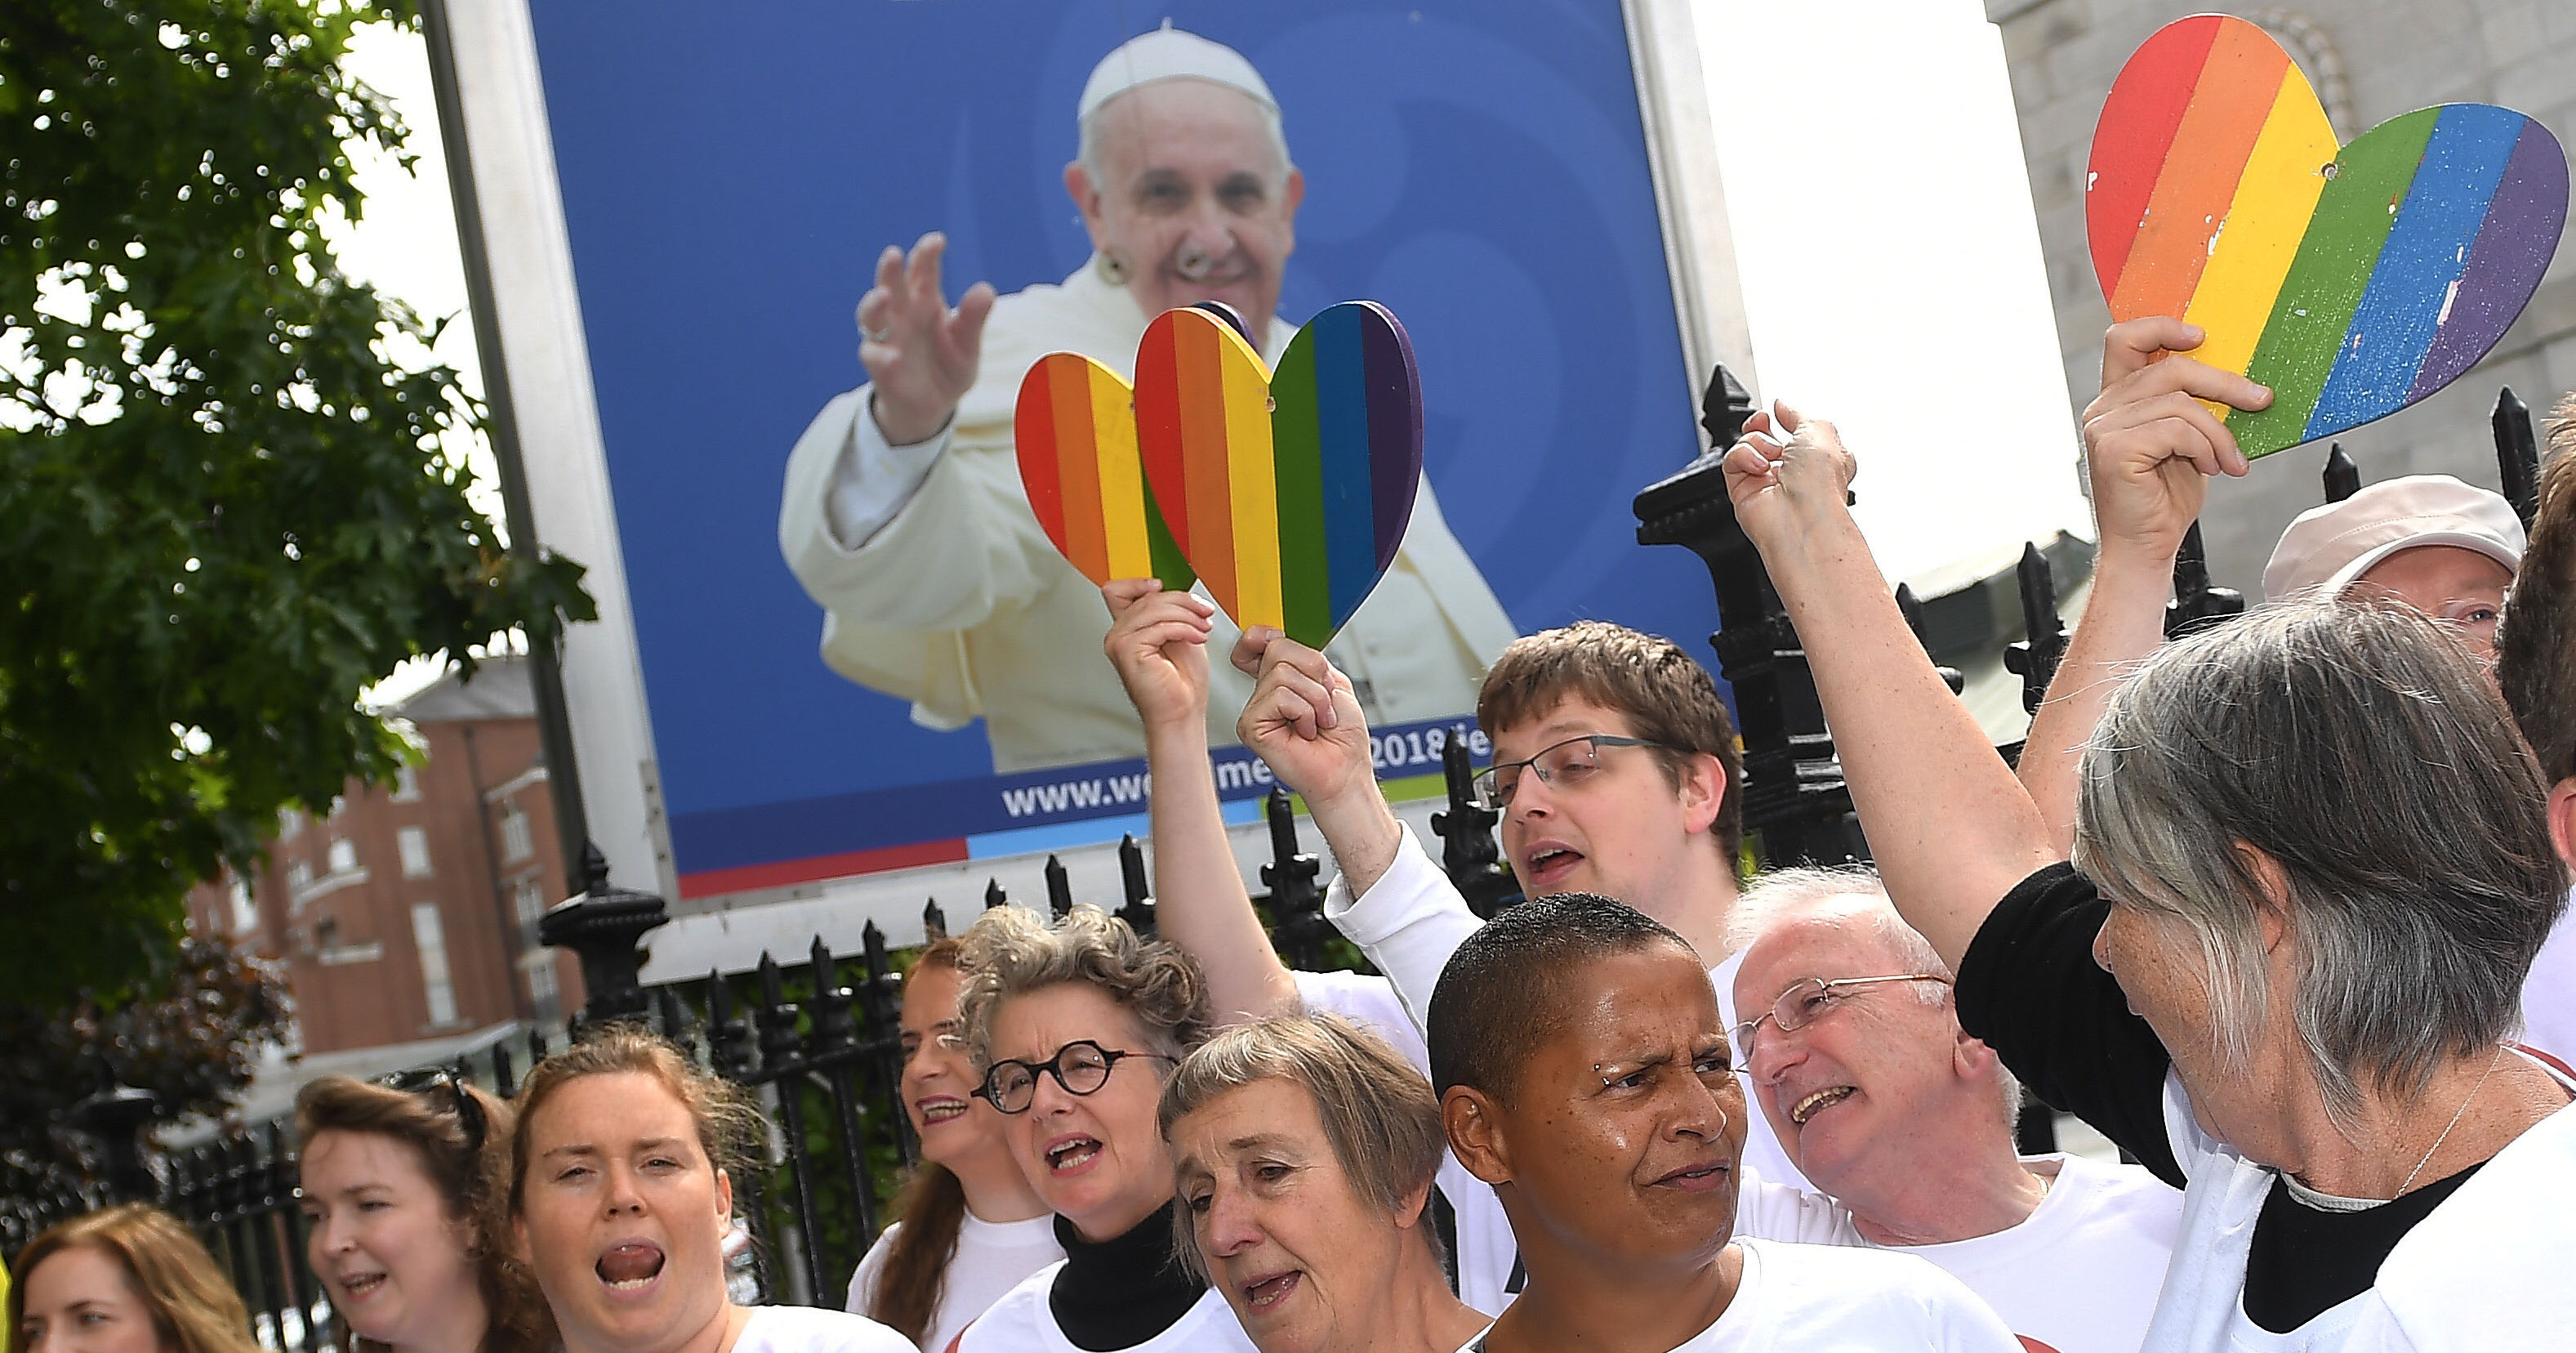 Catholics survey about LGBT people